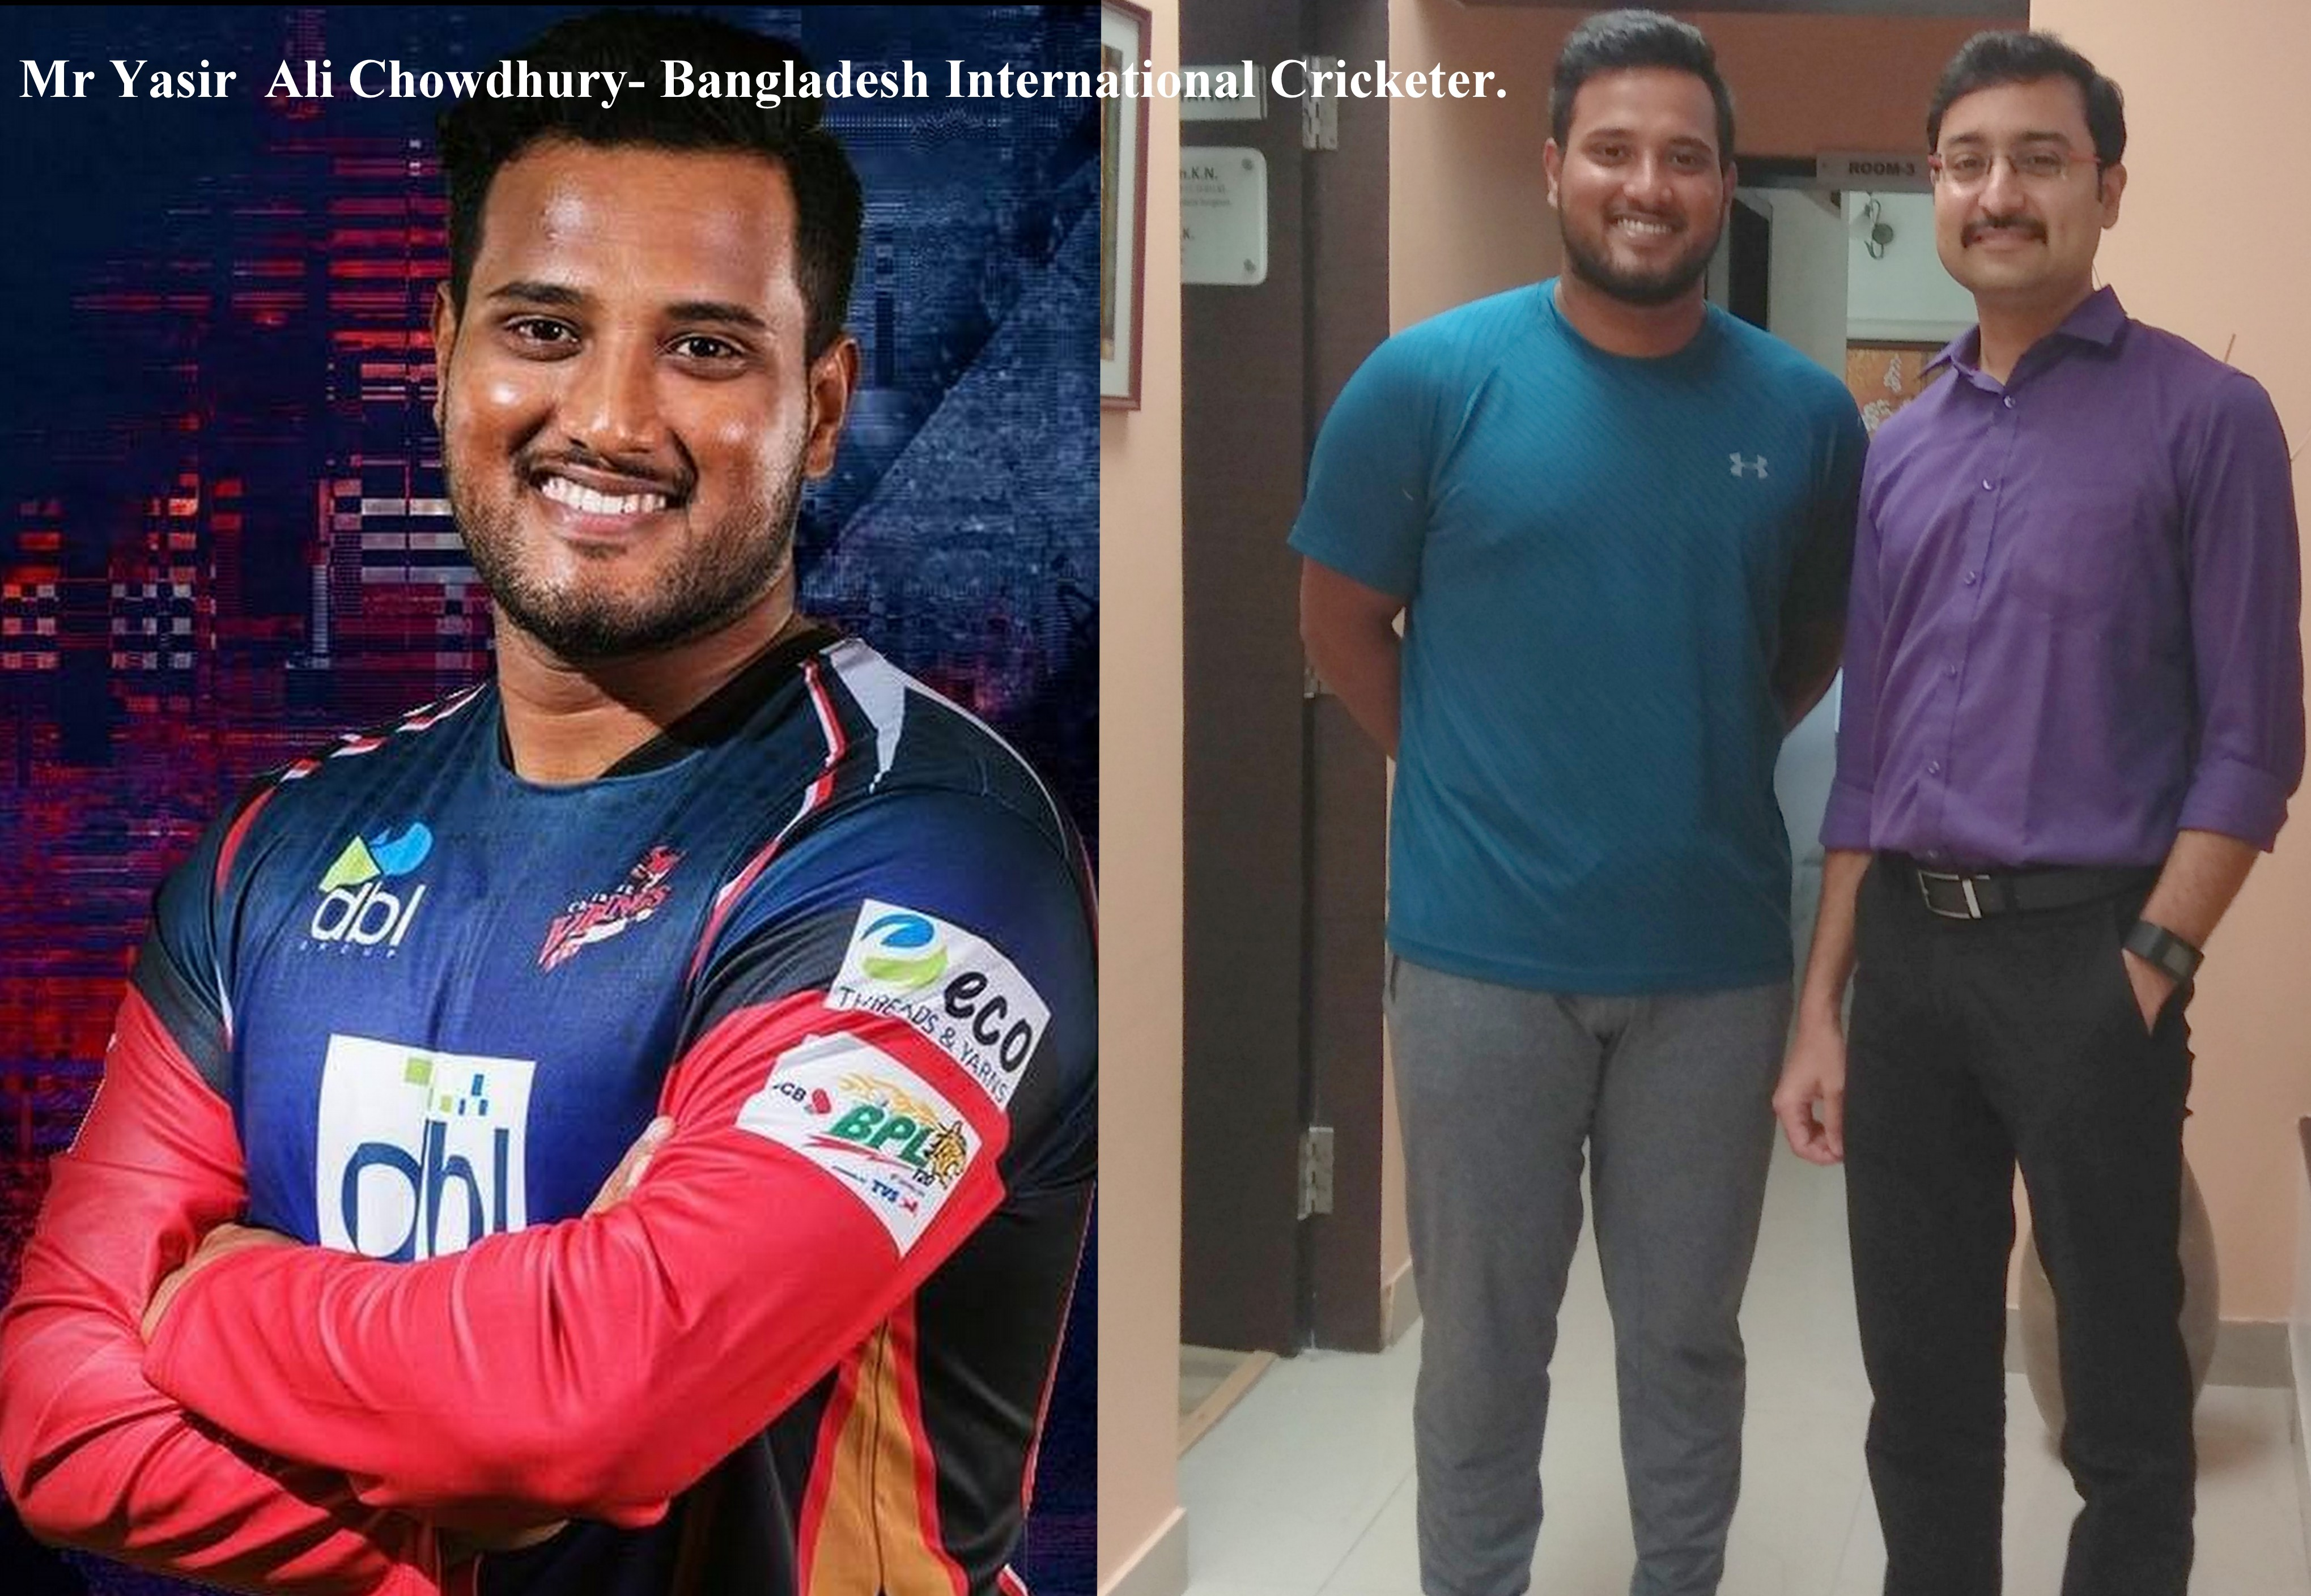 Mr.Yasir Ali Chowdhary, Bangladesh International Cricketer